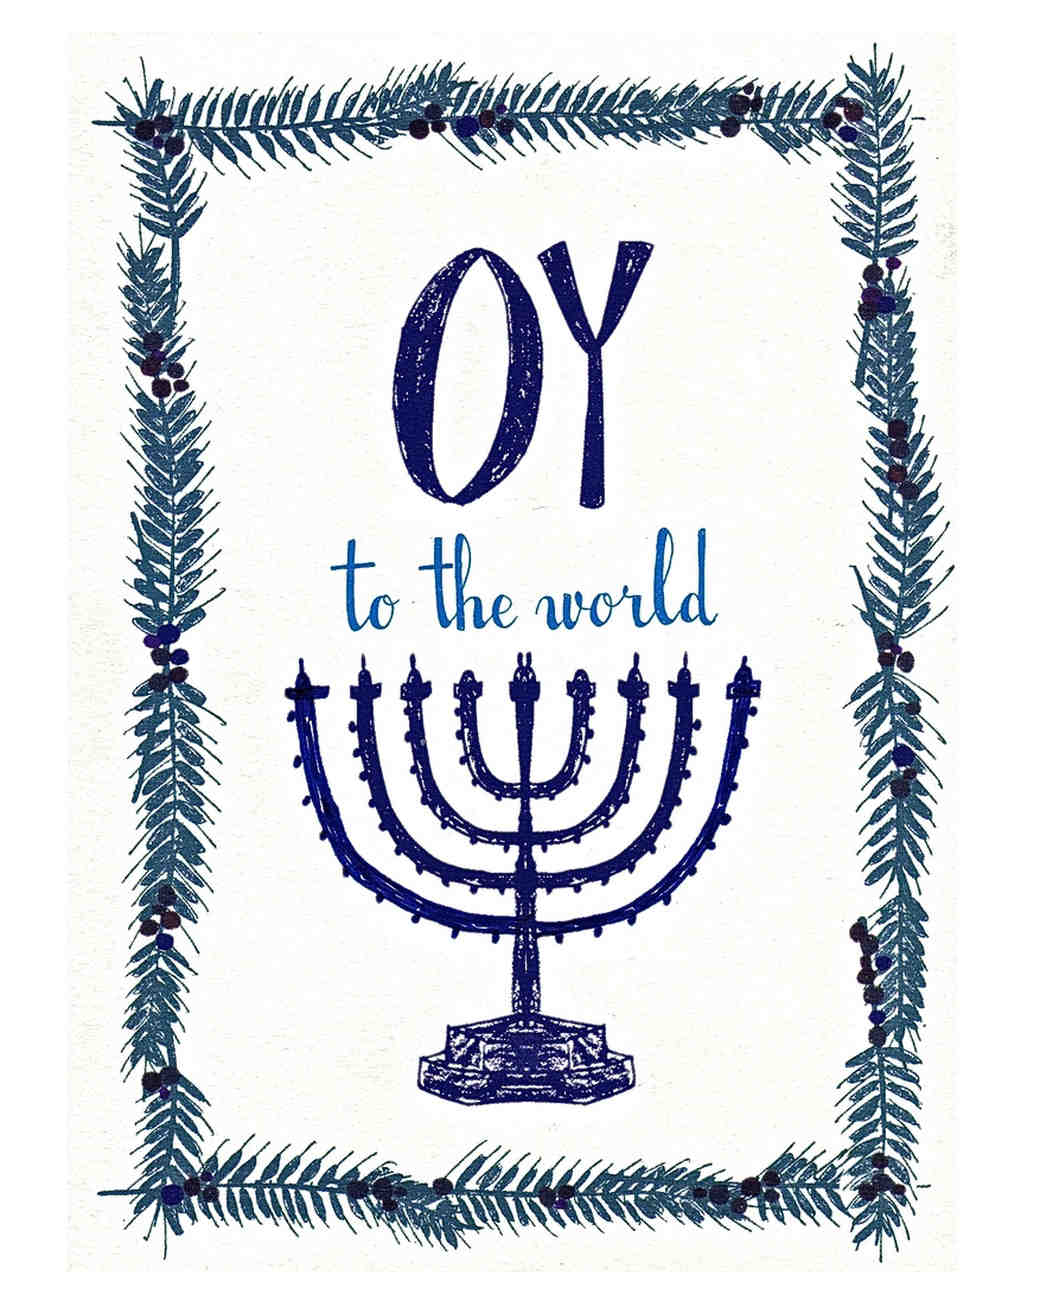 holiday-card-mr-boddington-studio-hanukkah-1215.jpg